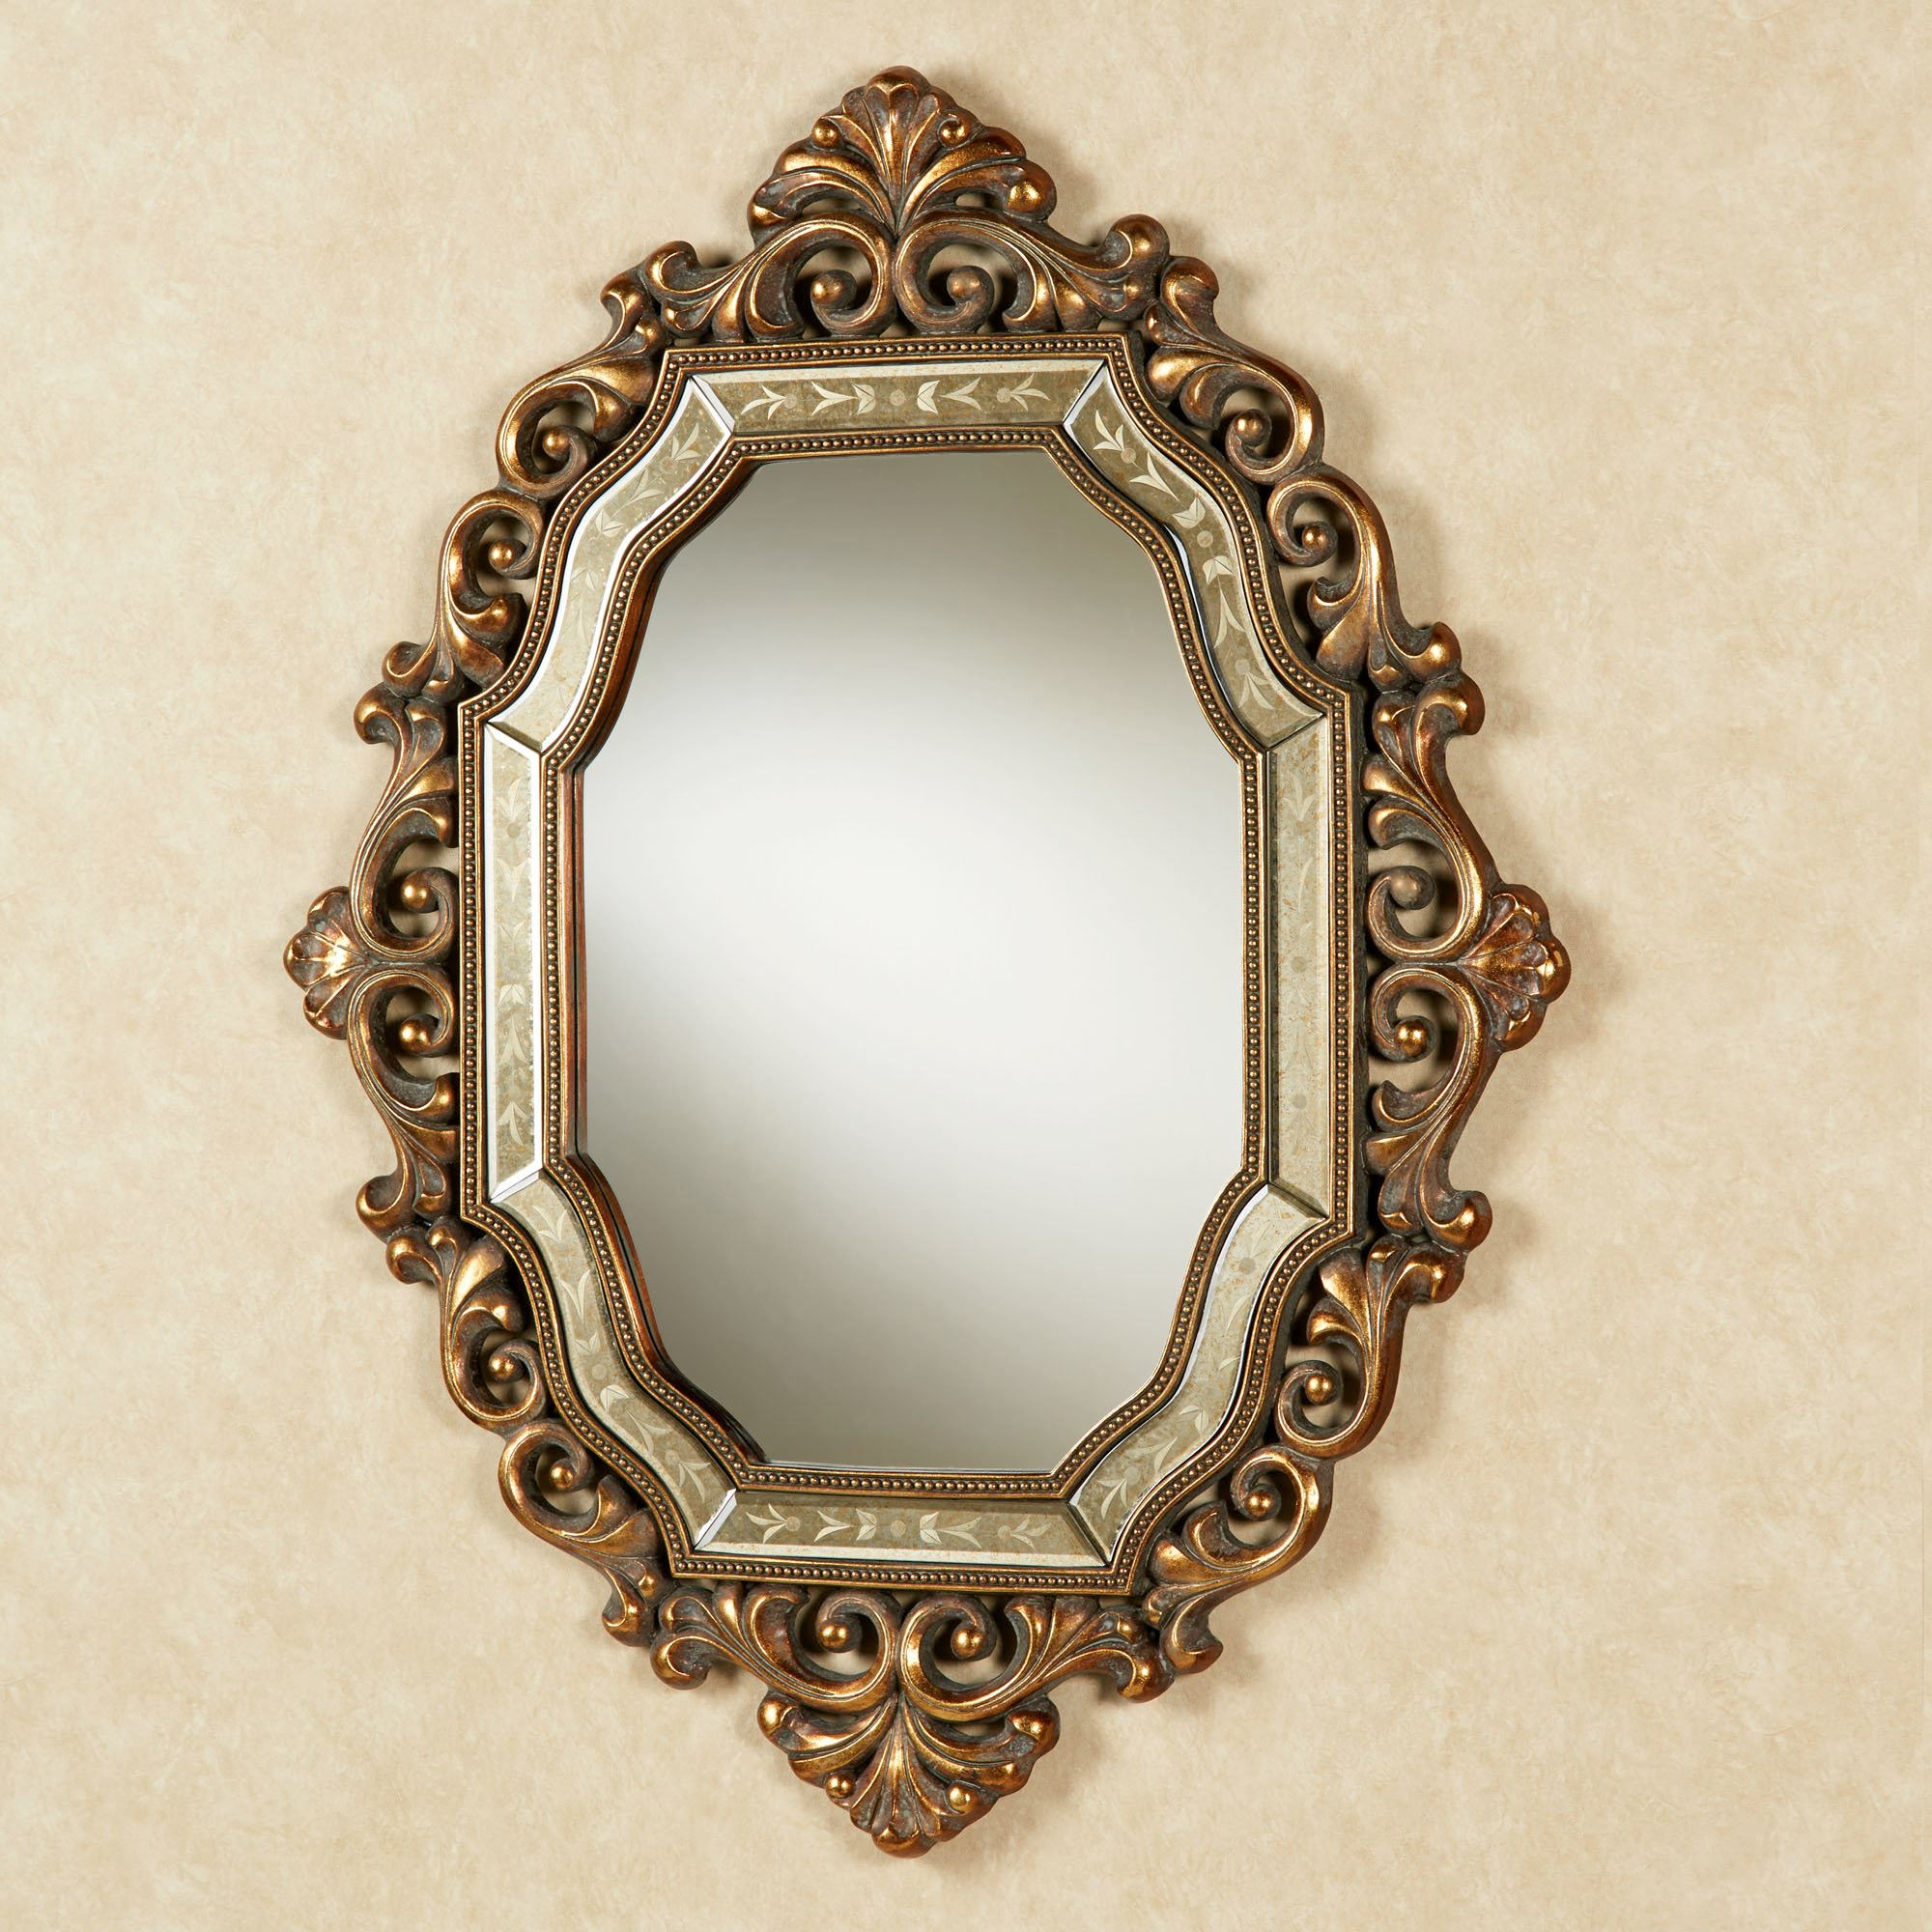 Preferred Vintage Wall Mirrors With Classy Design Antique Wall Mirror With Mirrors Interioryou Royal Art (View 17 of 20)